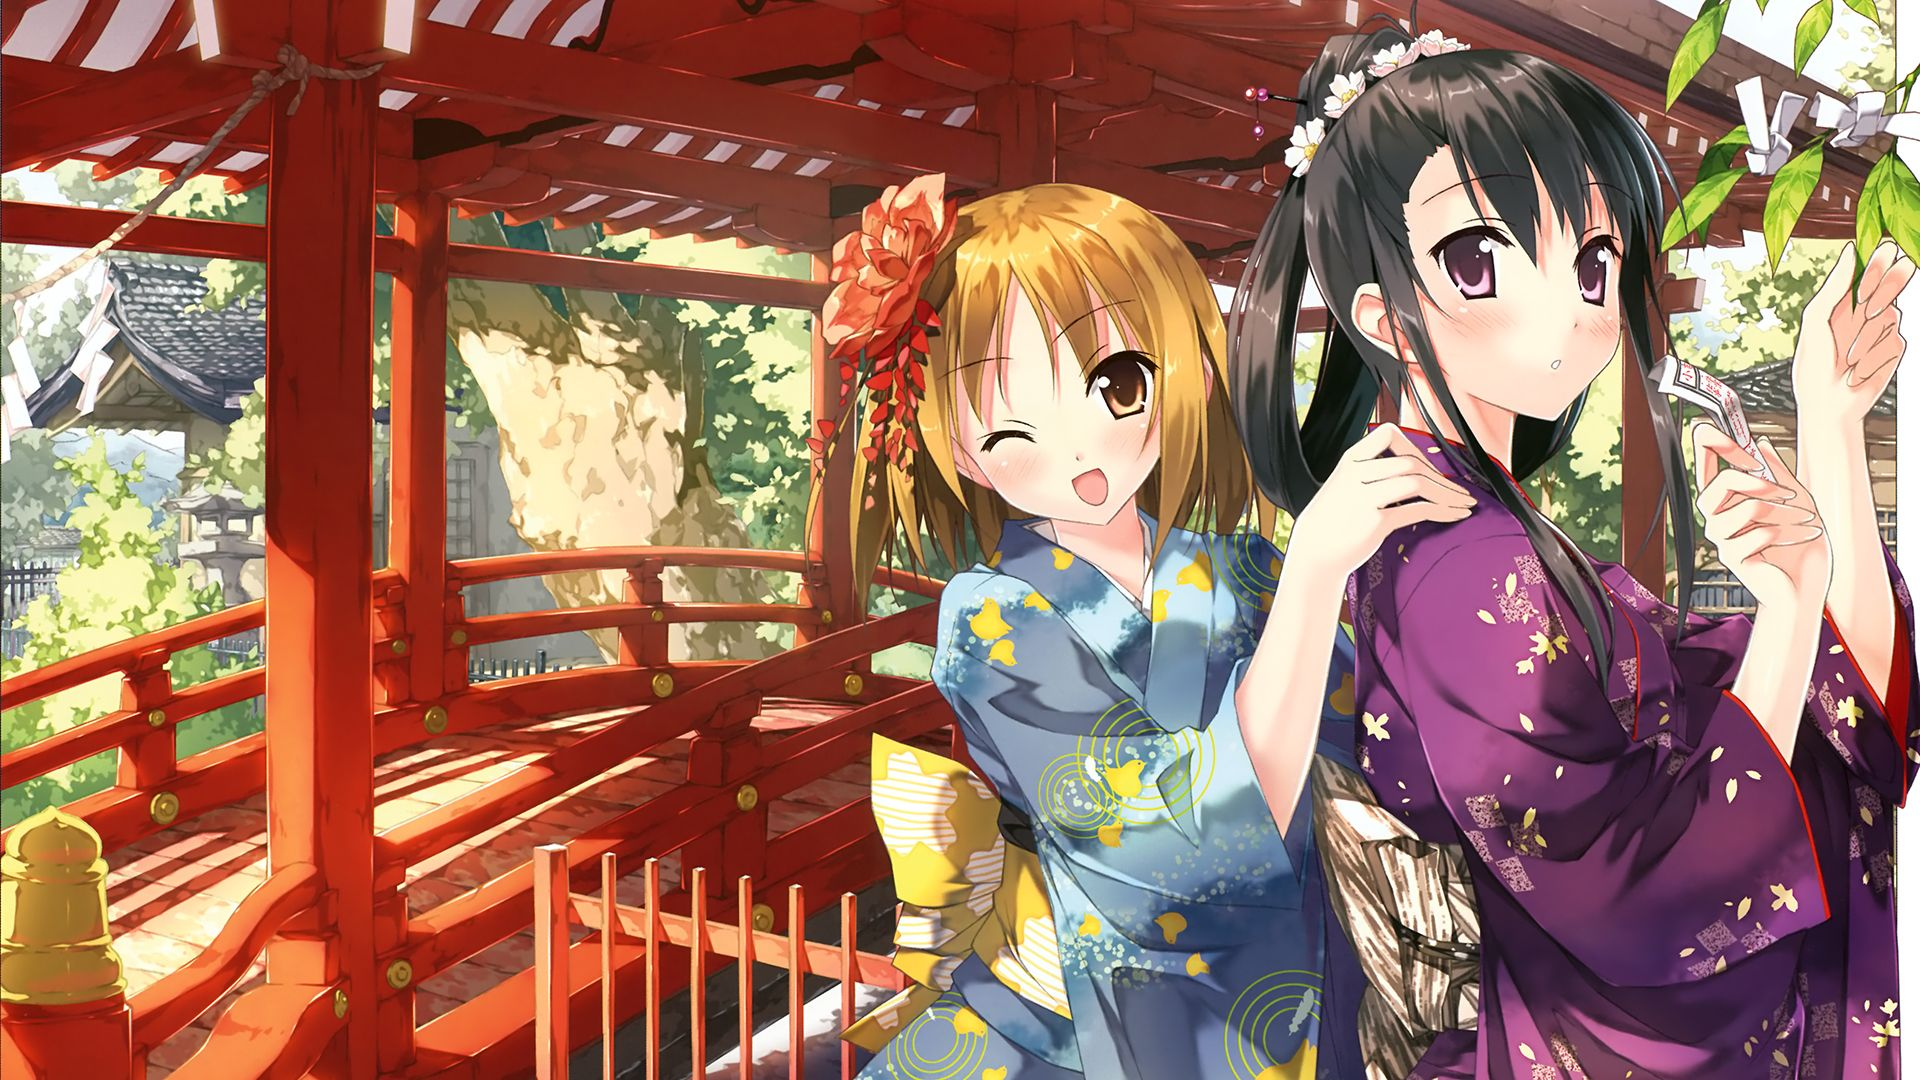 Anime Original Two Girls Pretty Cute Kawaii Japanese